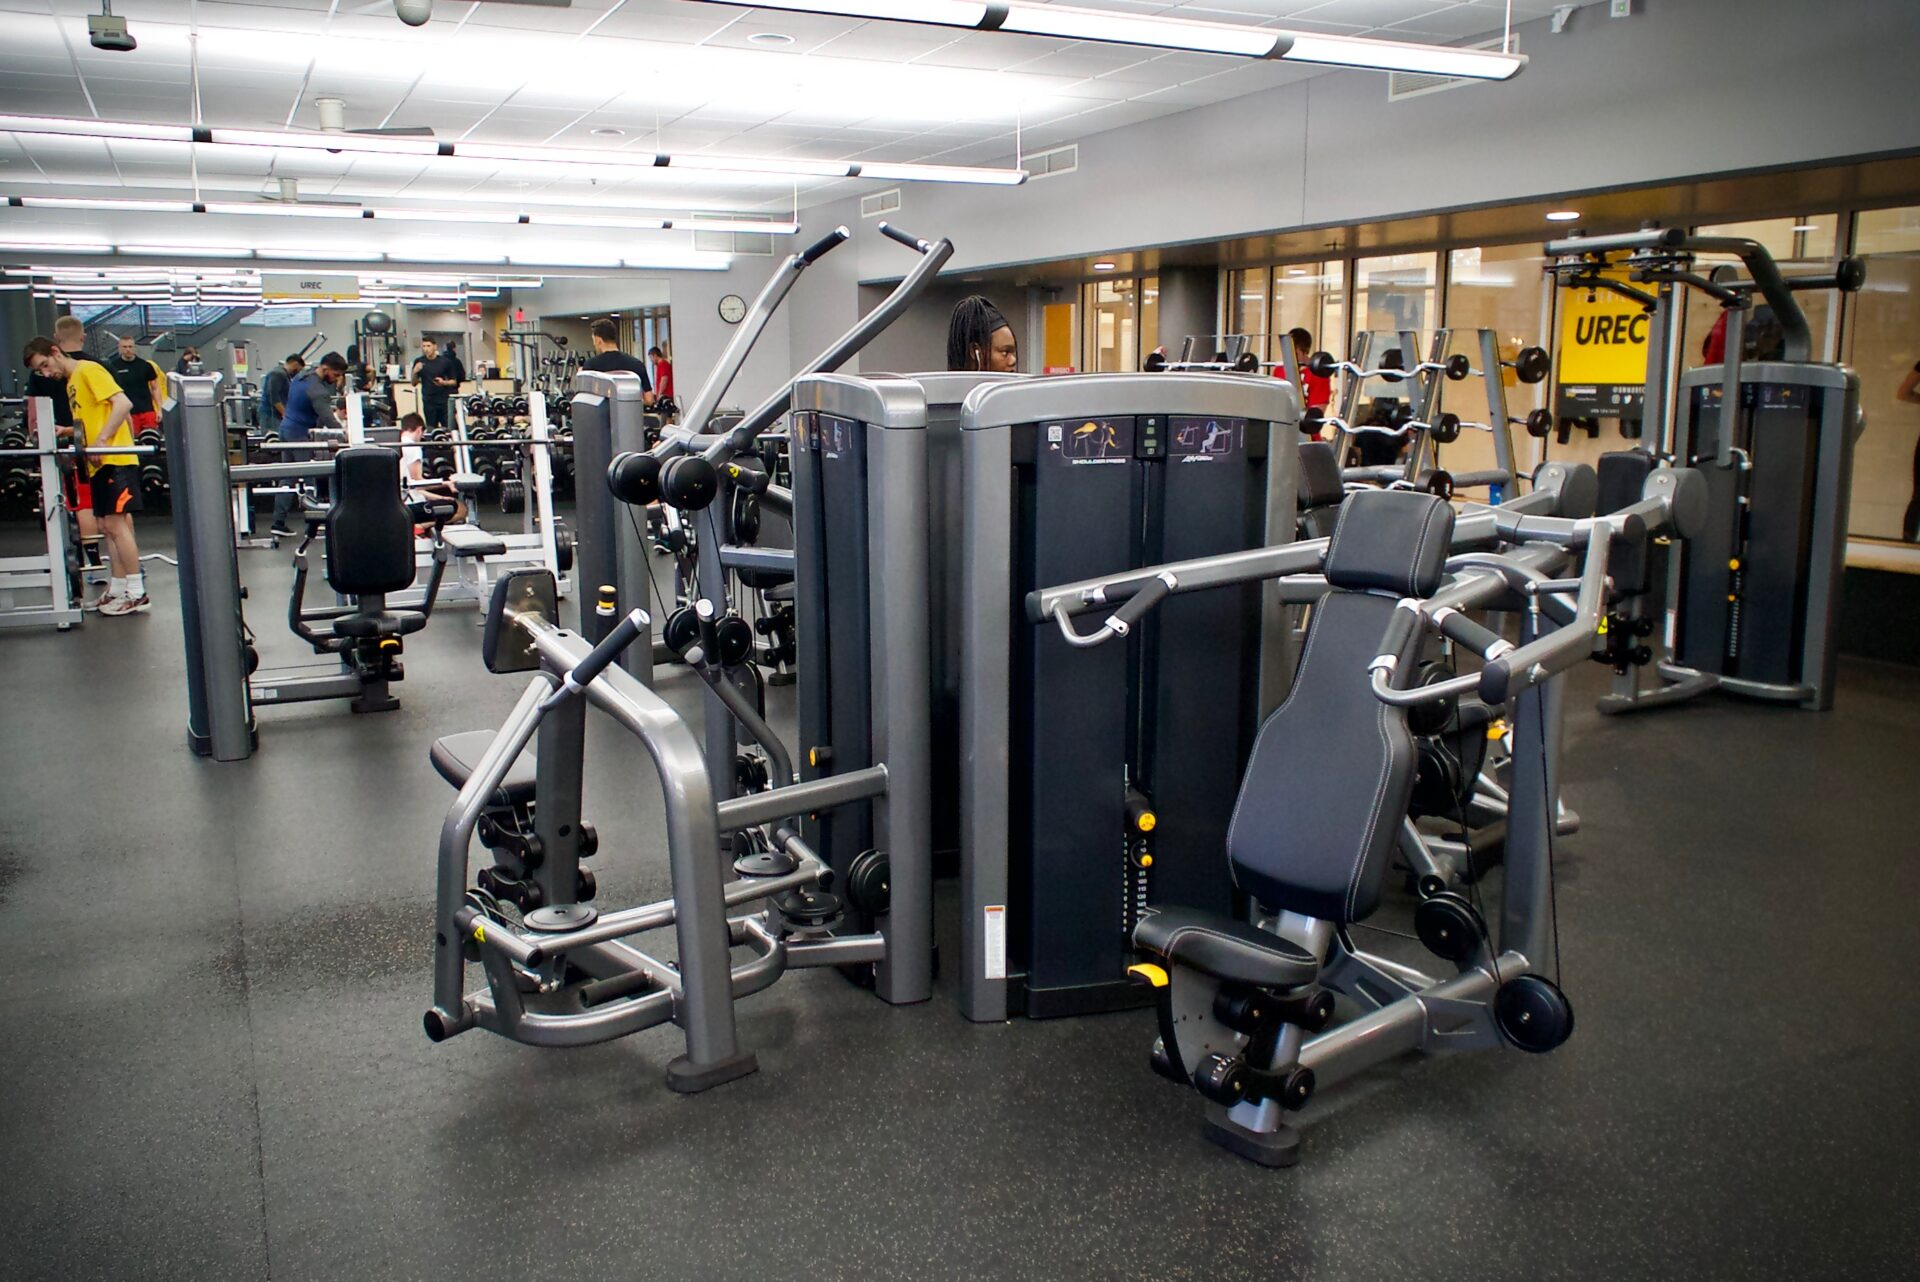 Weight and cardio room university recreation